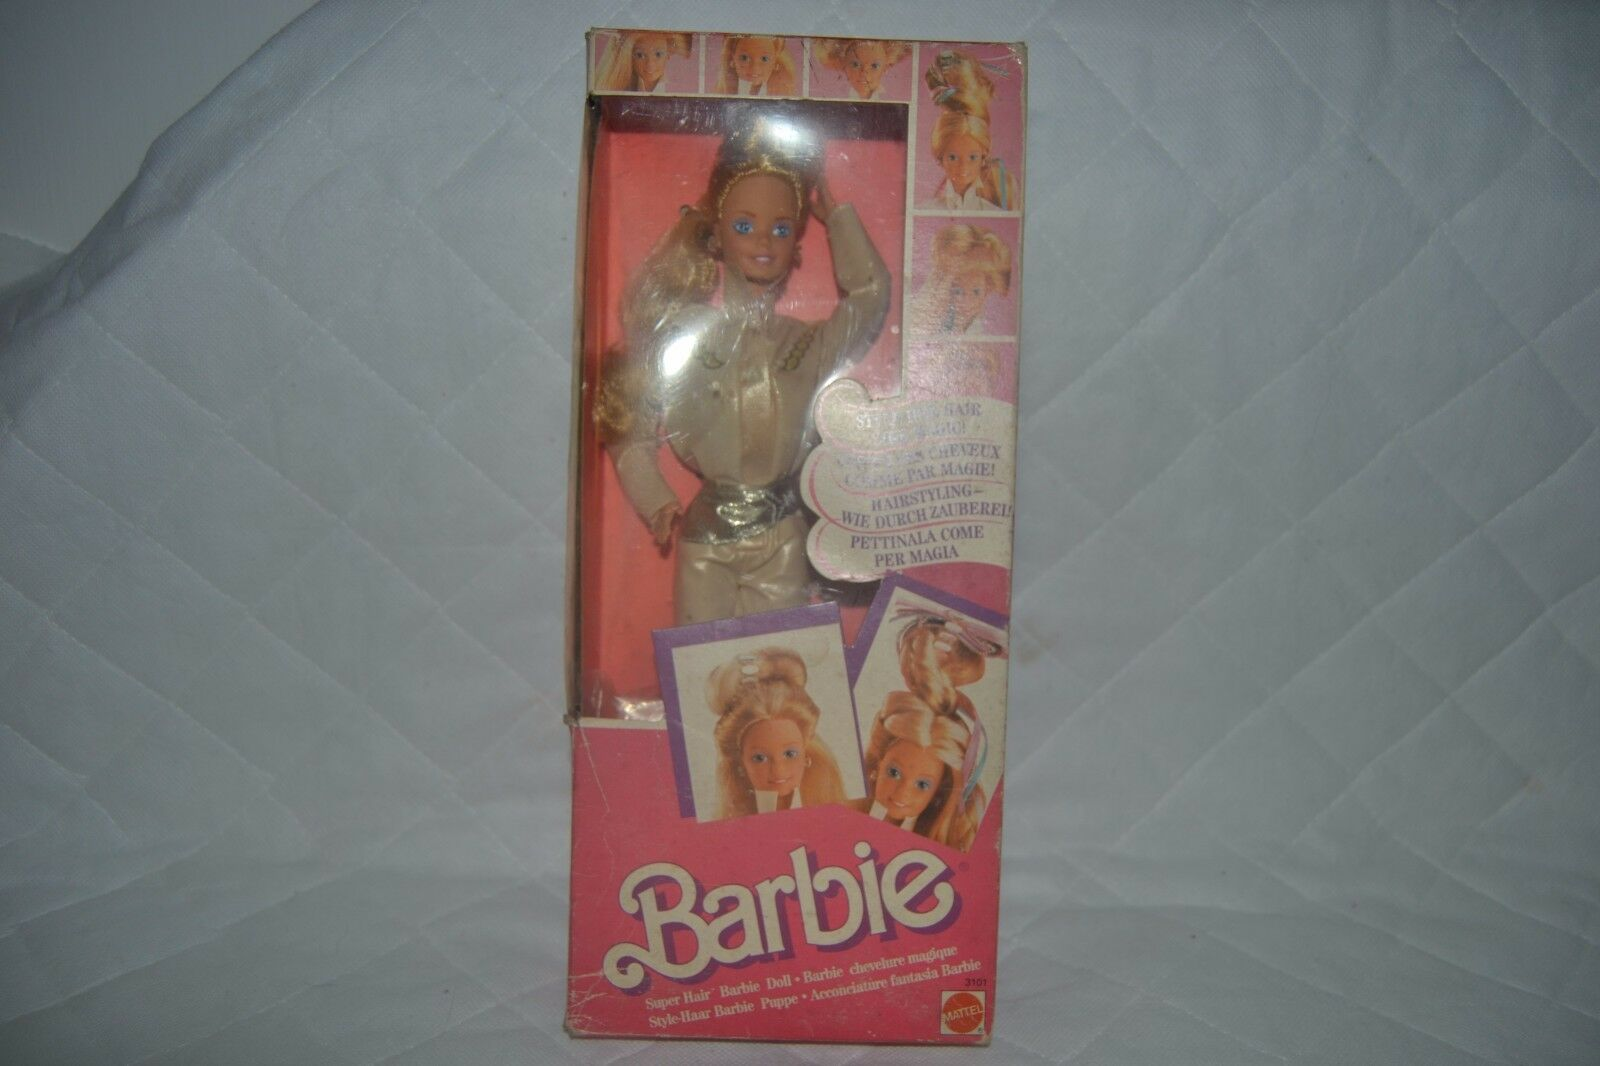 BARBIE SUPER HAIR  3101 3101 3101 1986 MATTEL like New 5d2f0a